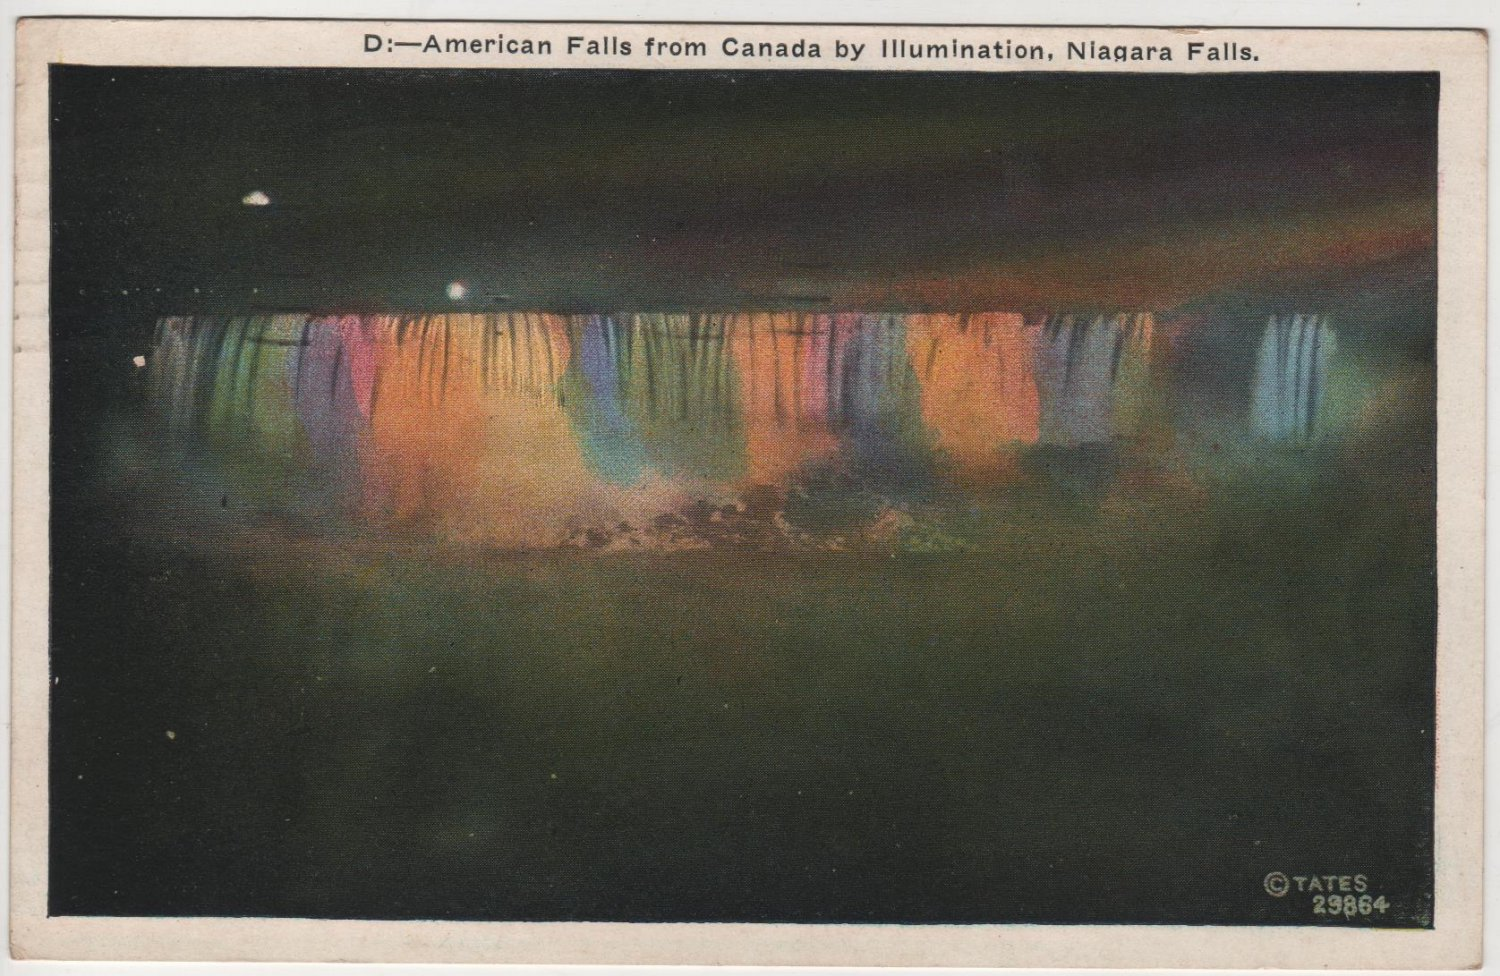 New York Landscape Postcard, Illuminated American Falls from Canada c.1929